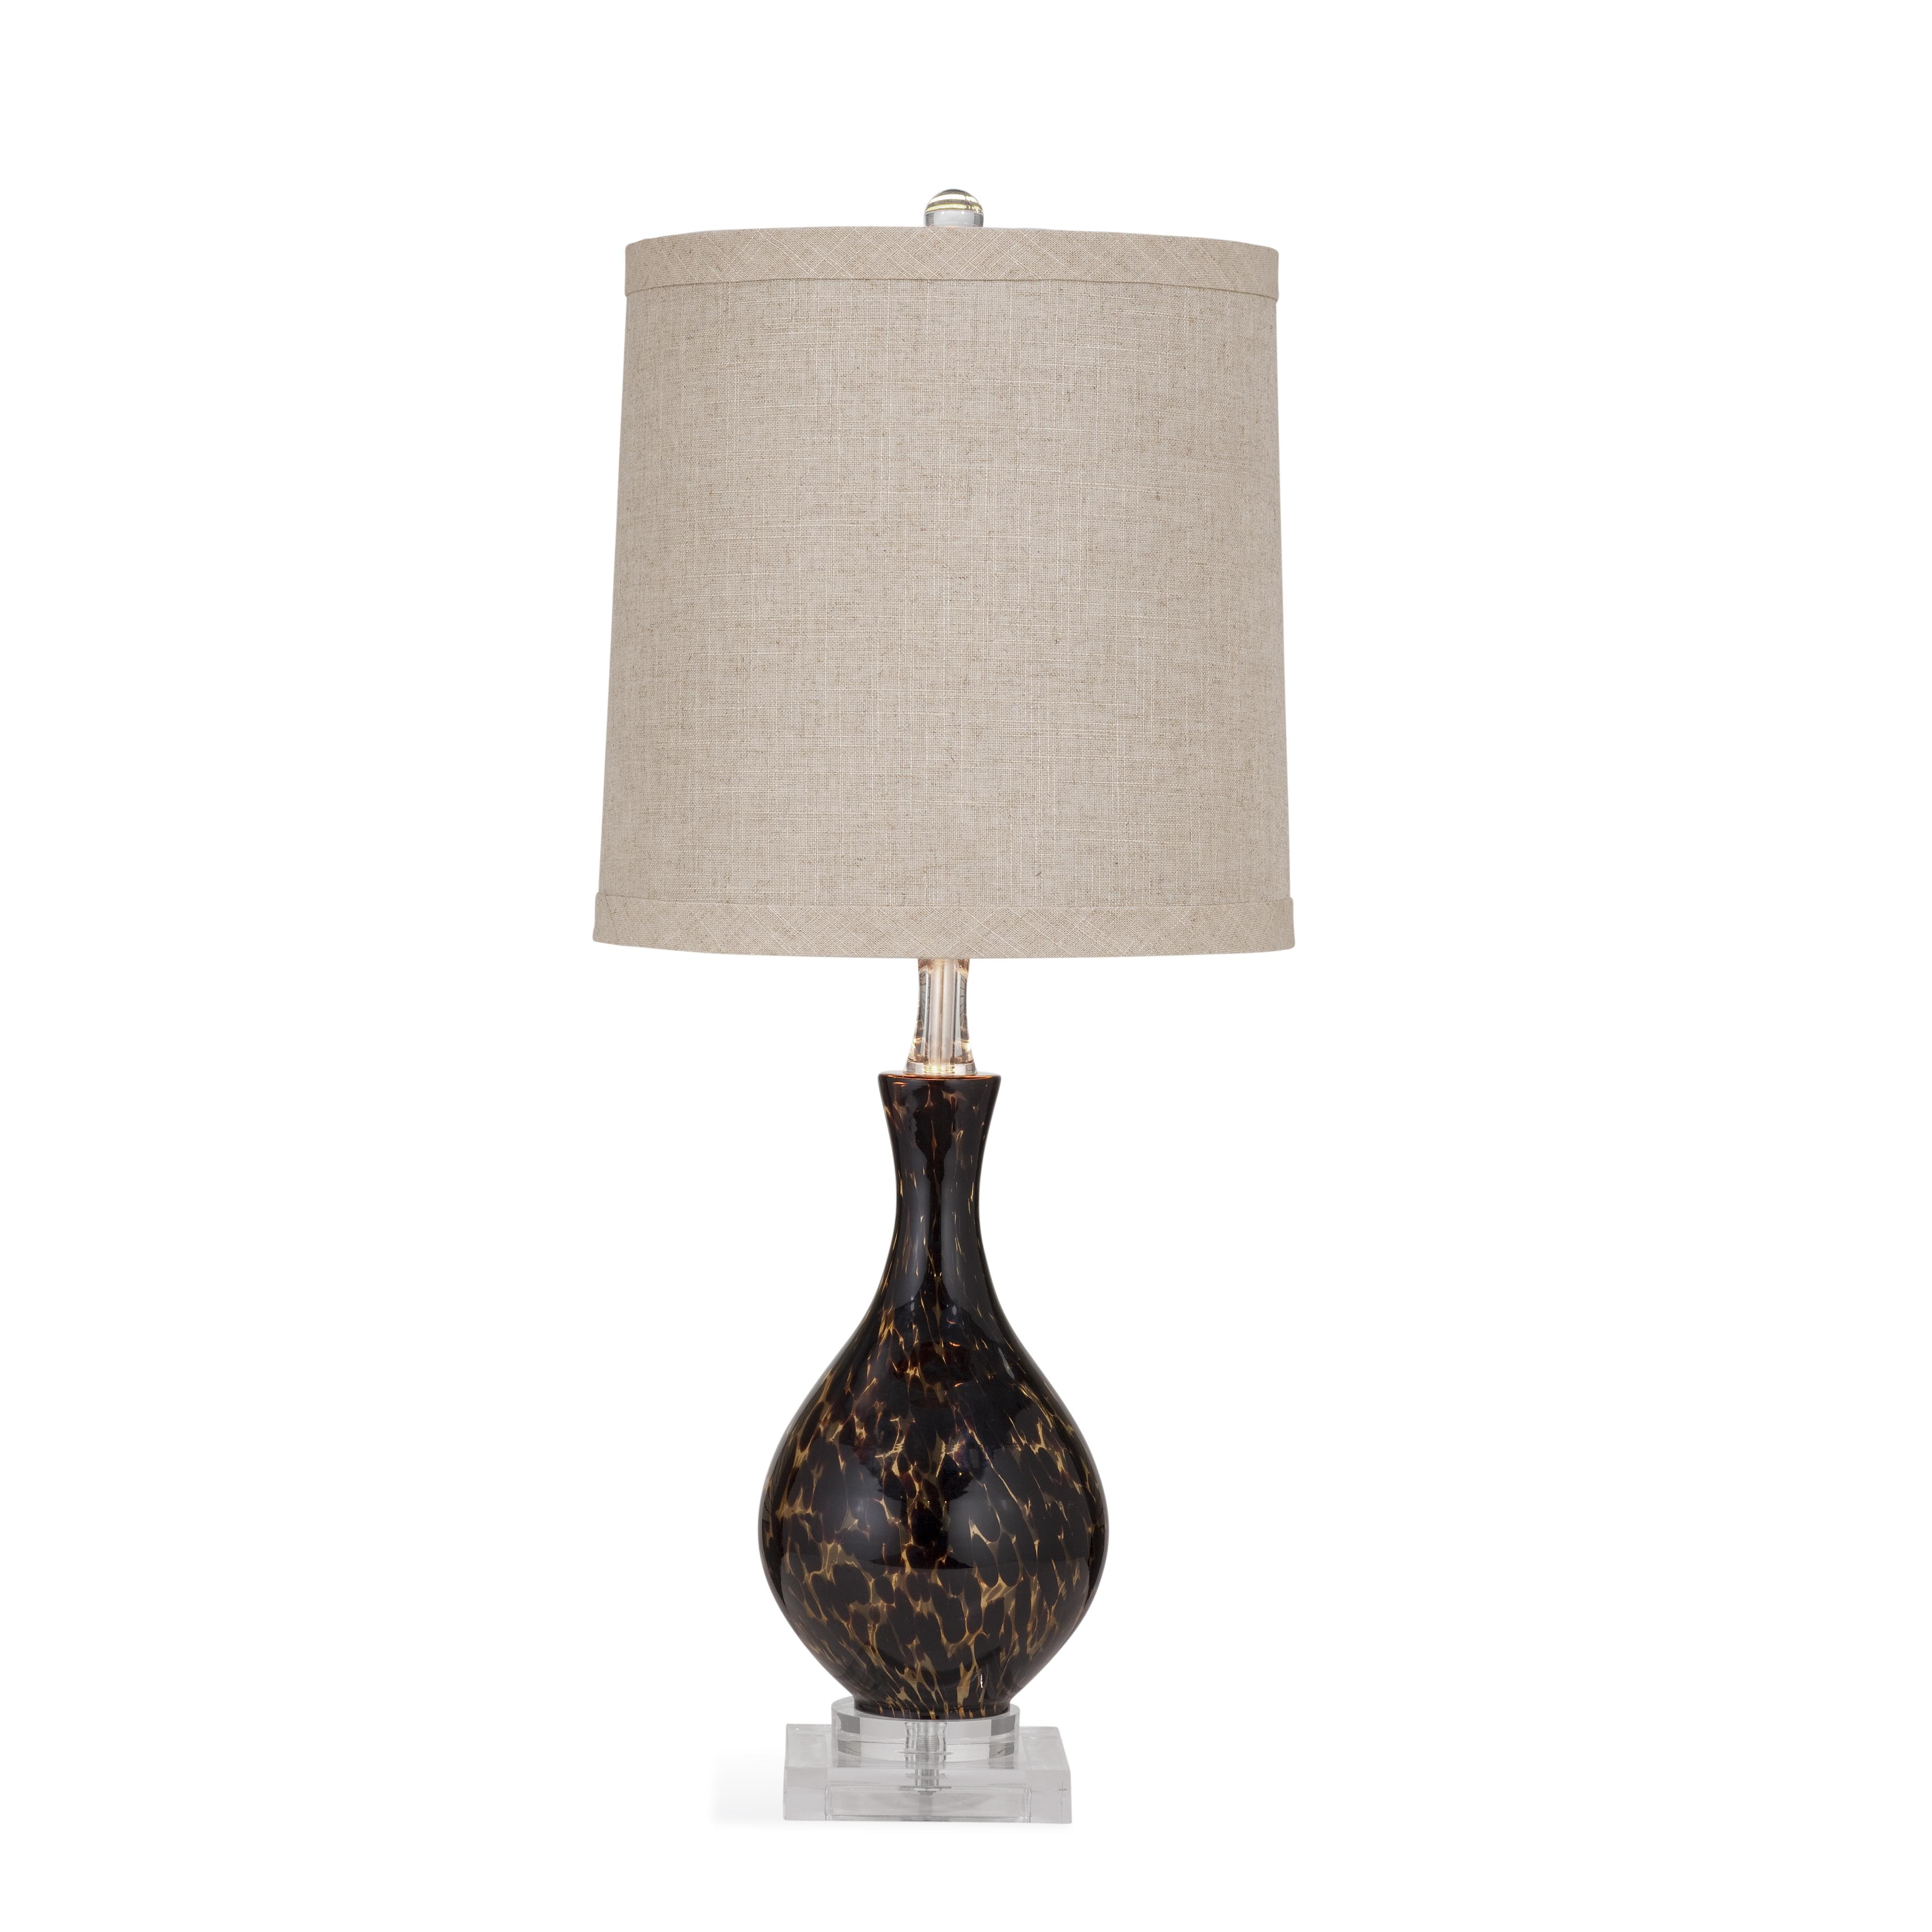 Pan Pacific Pembroke Table Lamp by Bassett Mirror at Alison Craig Home Furnishings